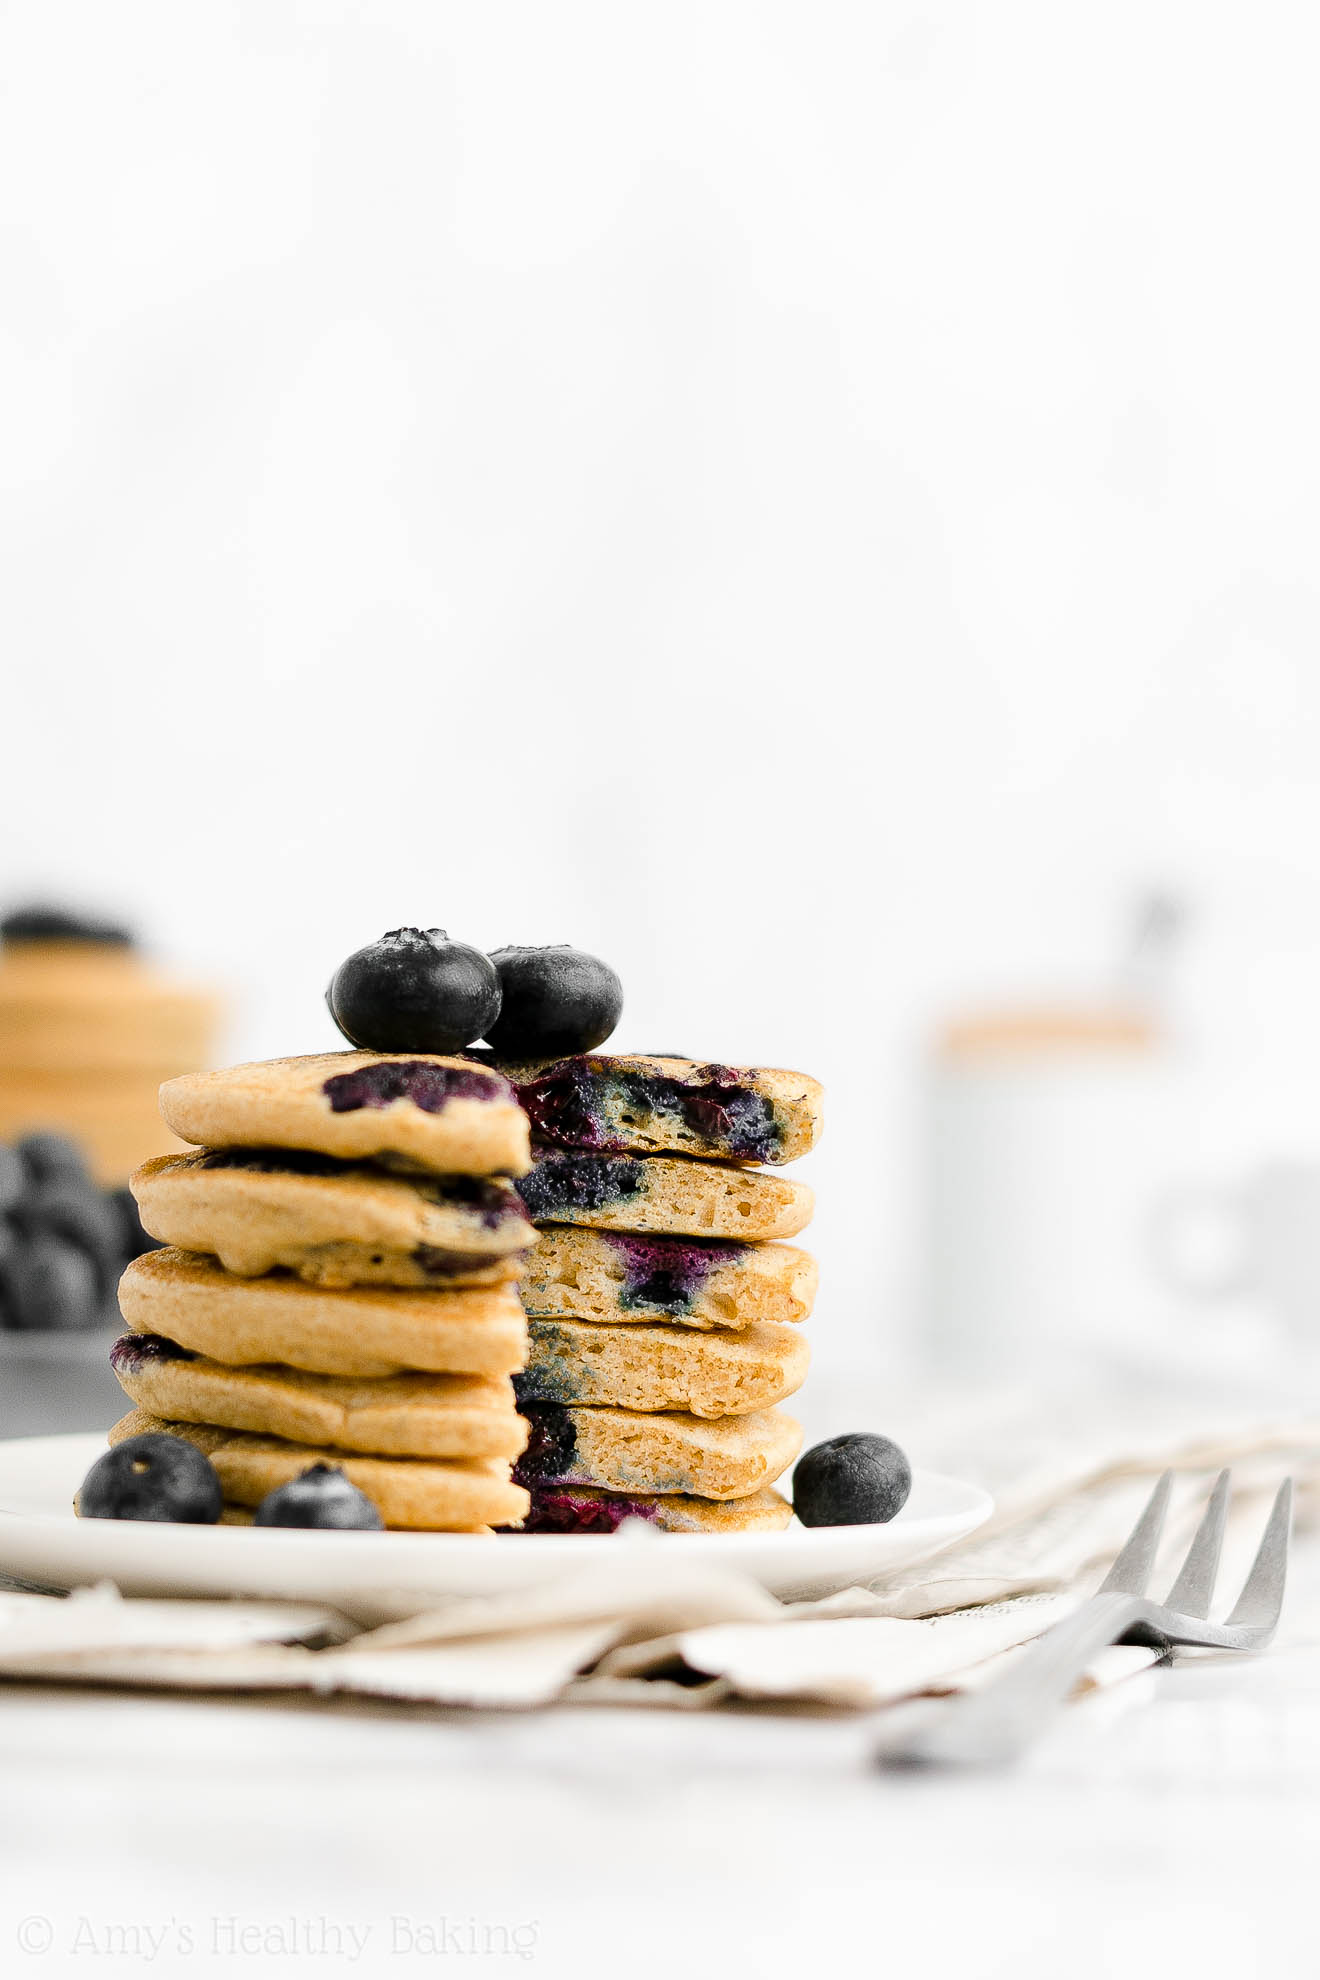 Best Easy Healthy Gluten Free Low Calorie One-Bowl Fluffy Blueberry Pancakes